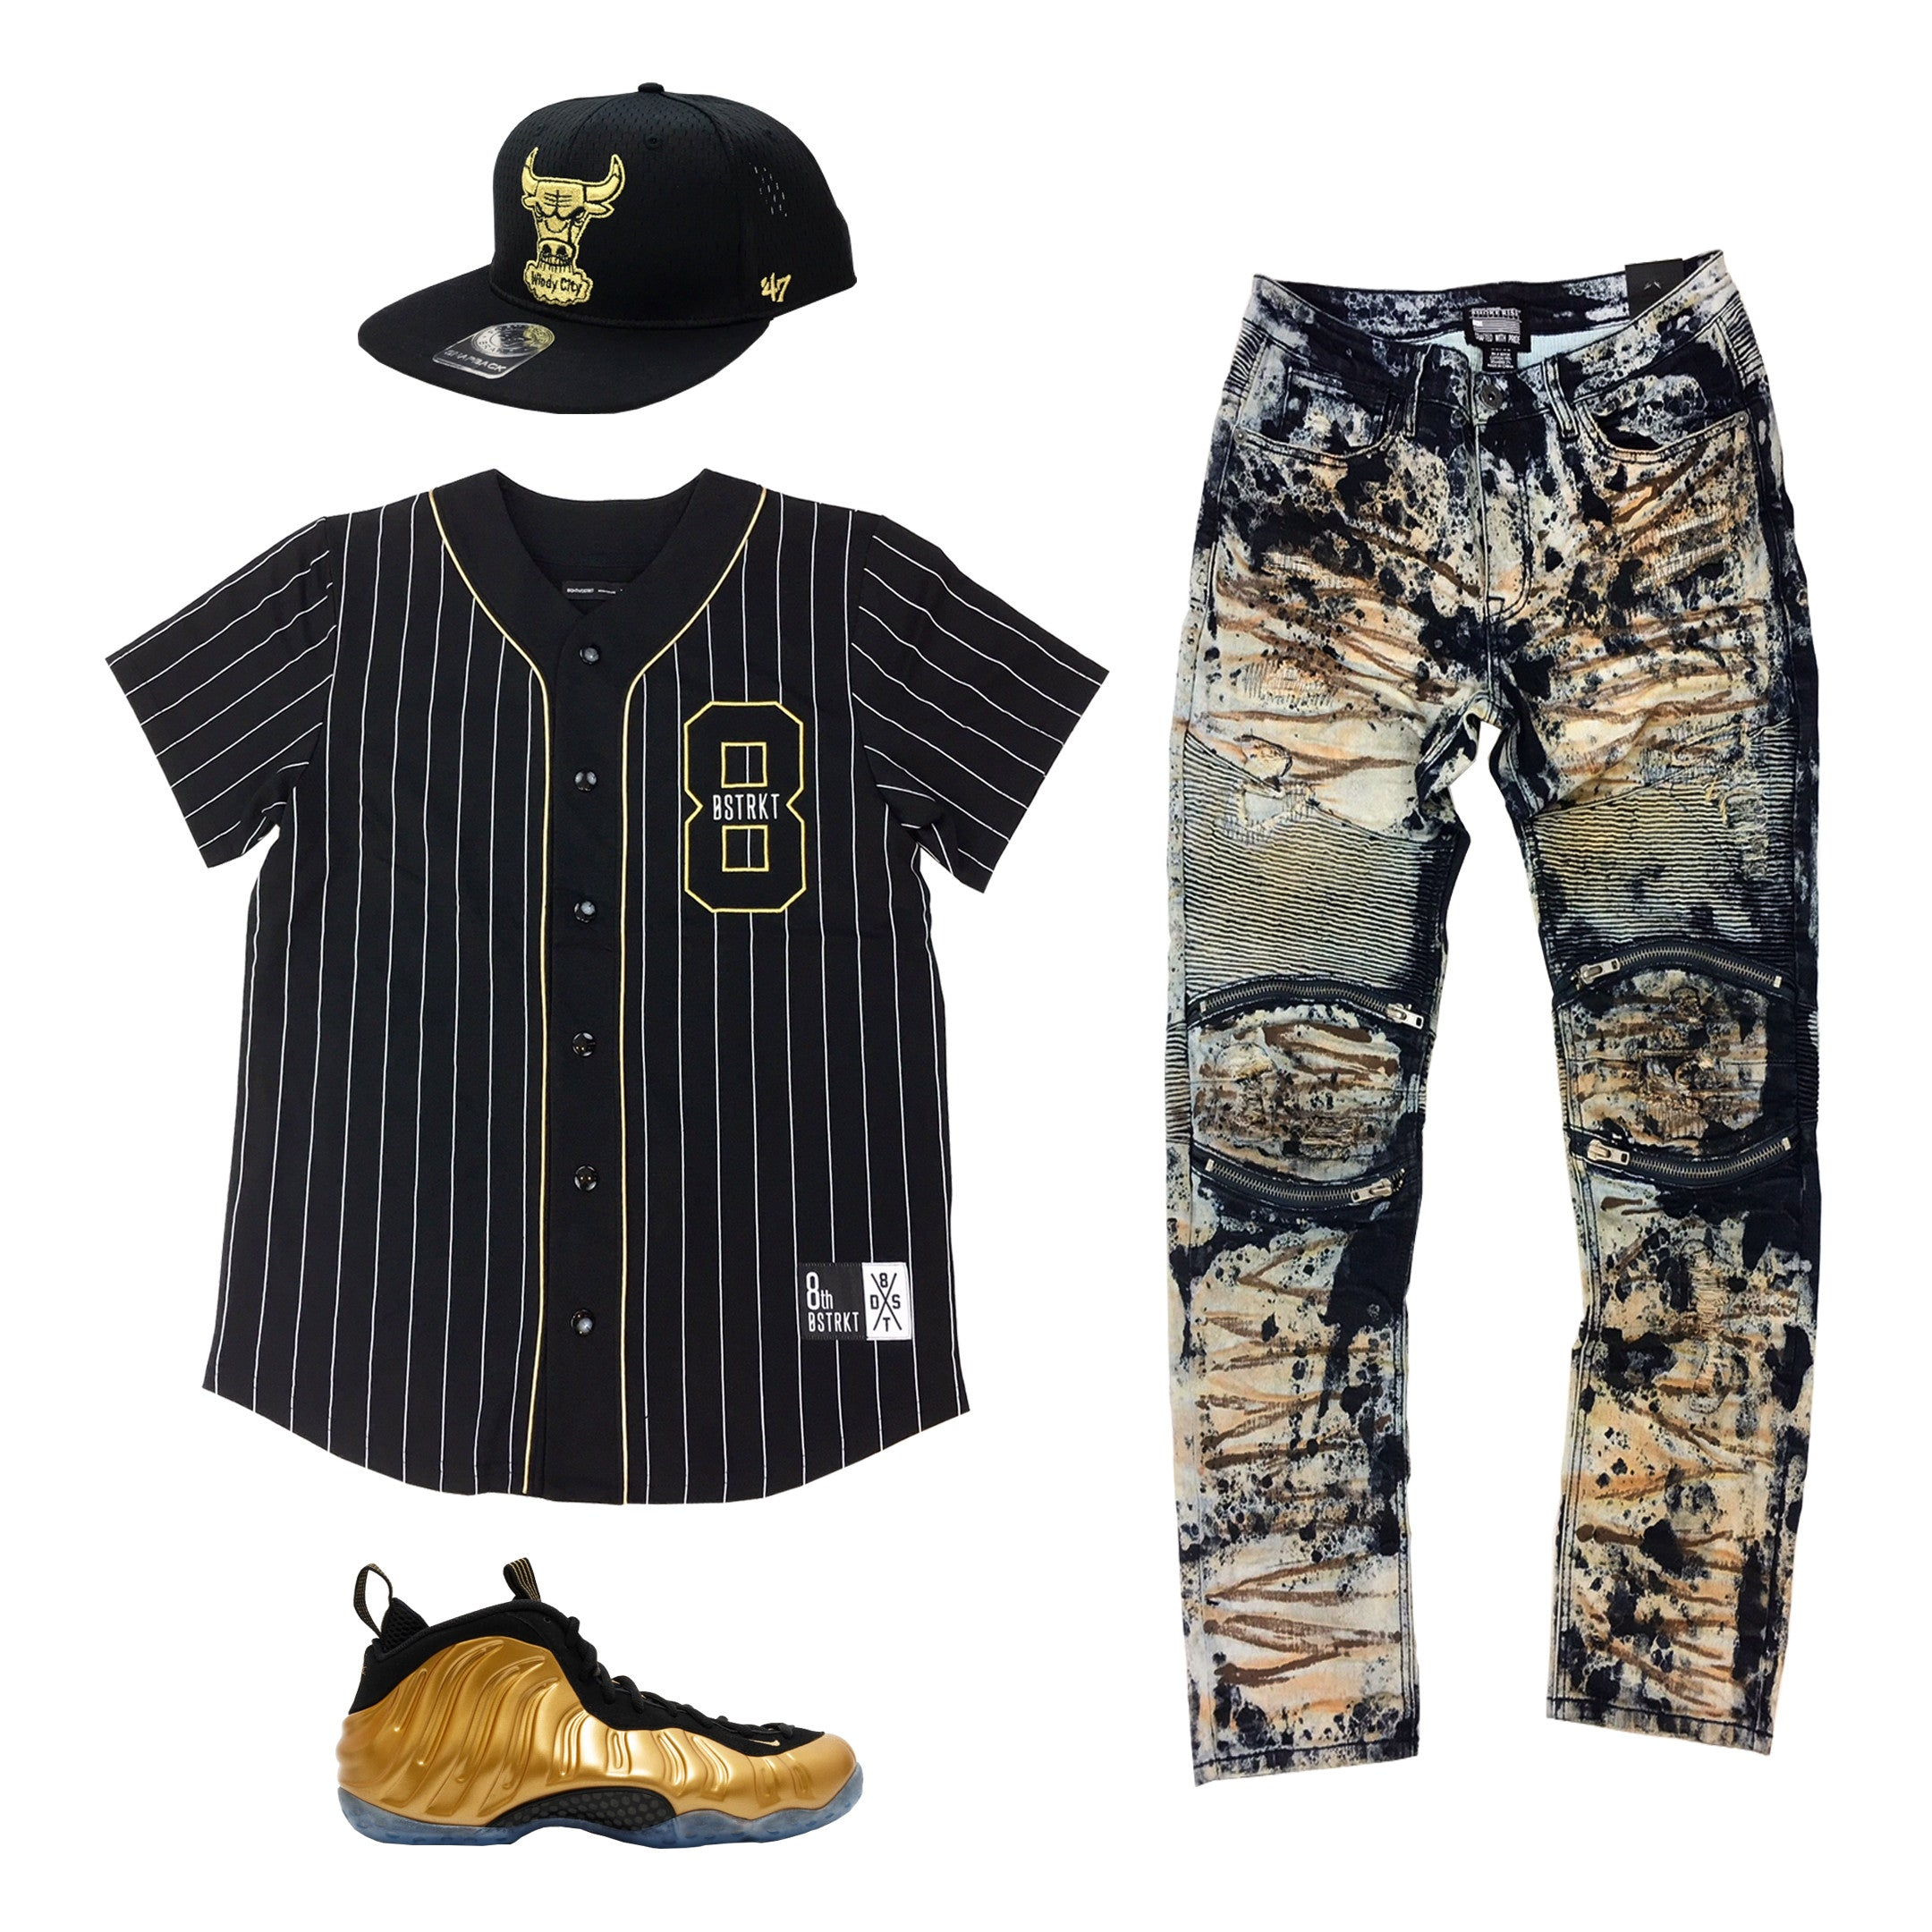 788e419ddd5 Nike Foamposite One Metallic Gold Outfit30.00 USDHat